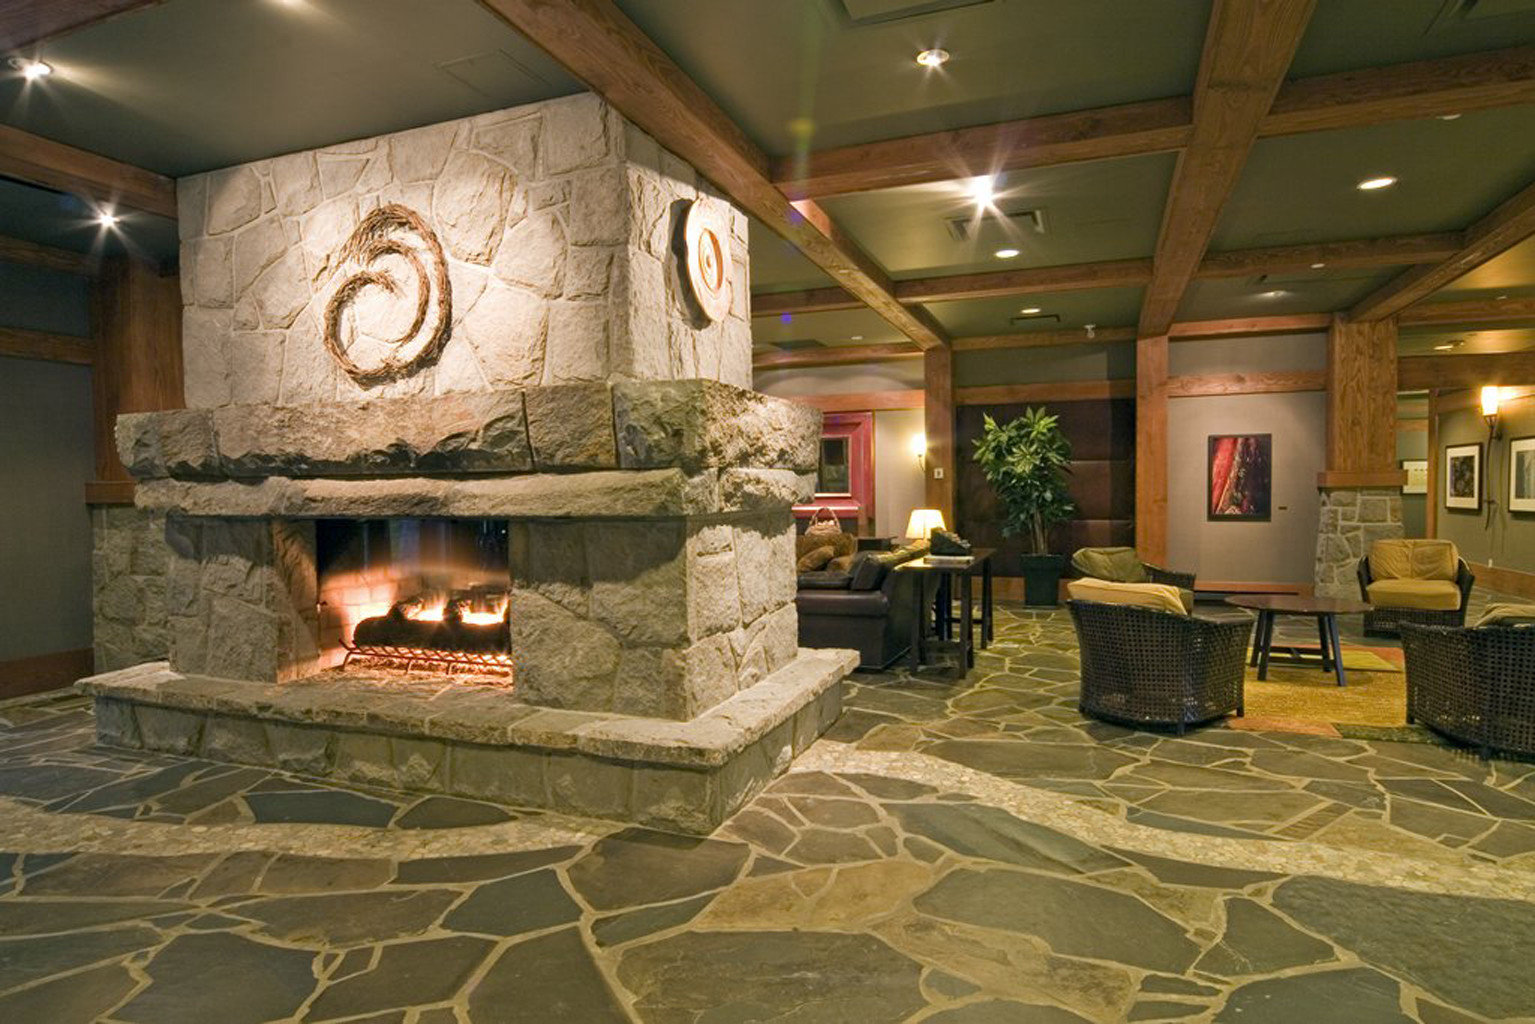 Lobby Lodge Lounge Mountains Outdoor Activities Scenic views building Fireplace home hearth living room flooring stone old